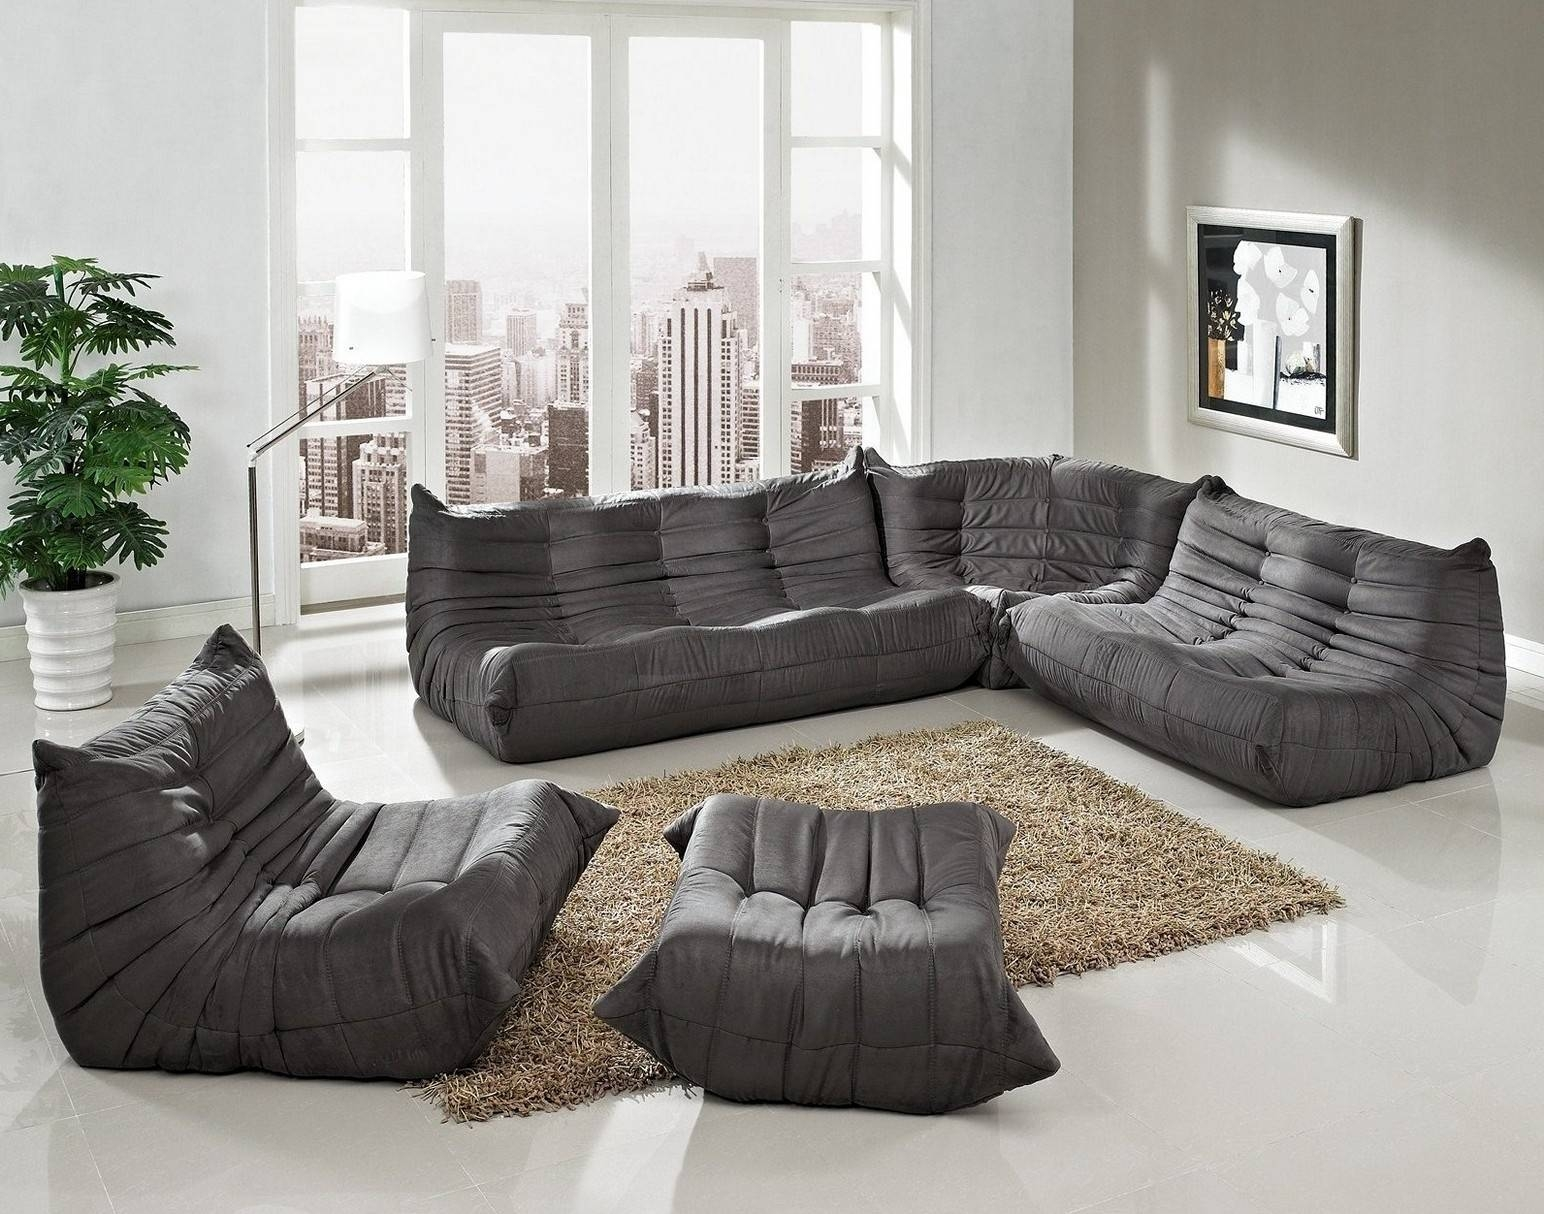 Comfortable Floor Couch For Sweet Home inside Comfortable Floor Seating (Image 13 of 30)